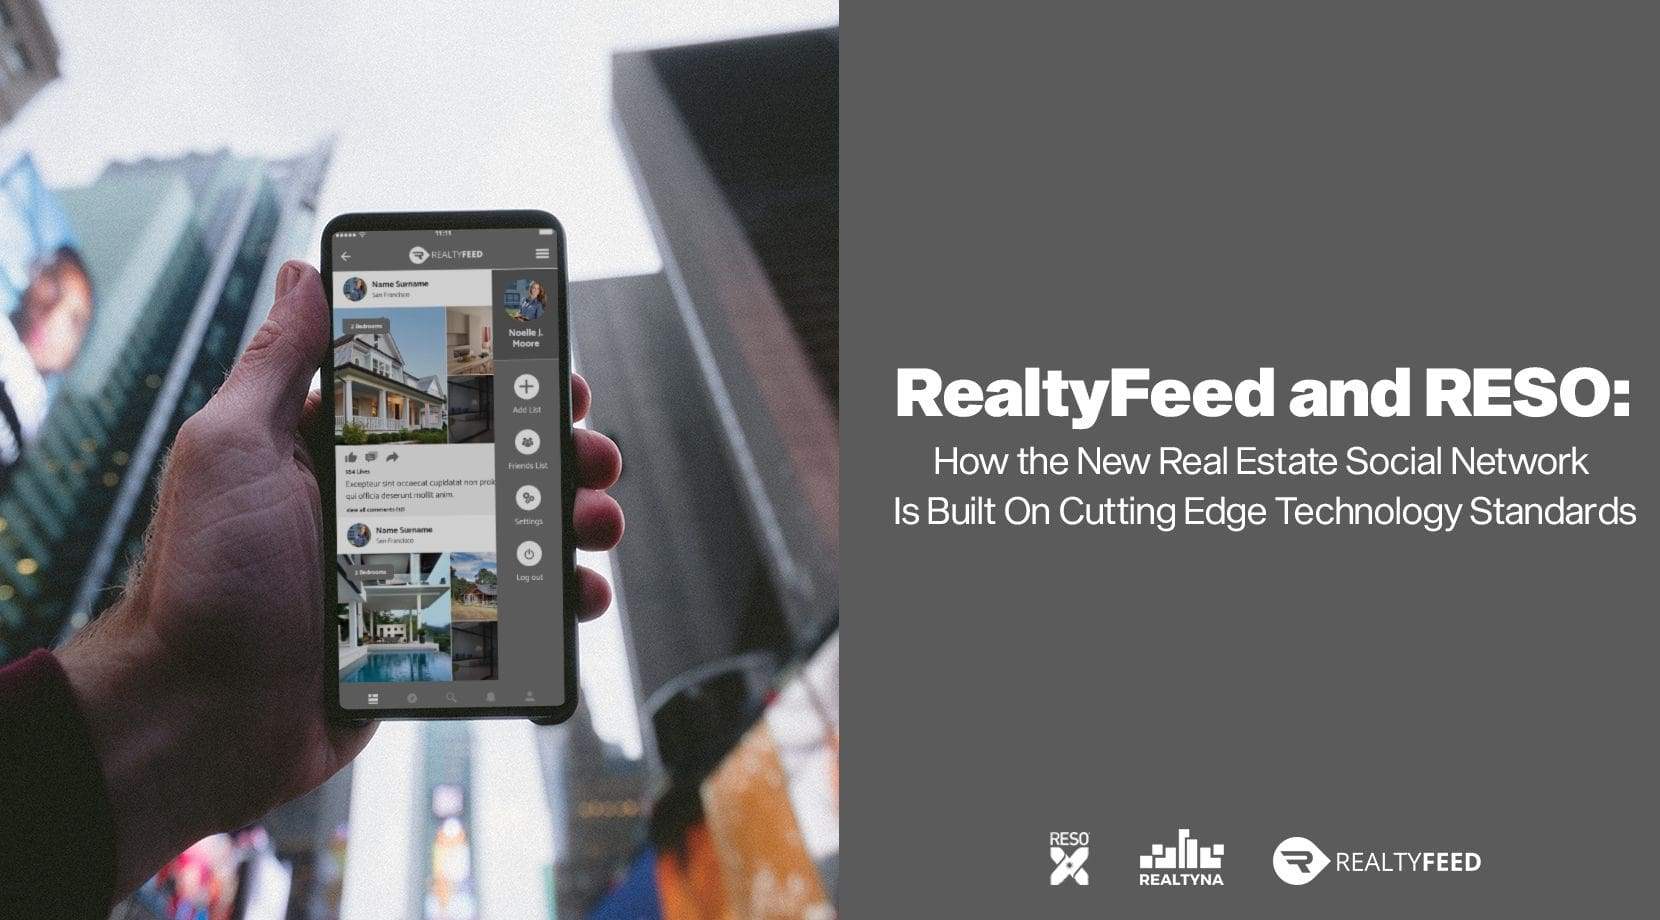 RealtyFeed and RESO: How the New Real Estate Social Network Is Built On Cutting Edge Technology Standards